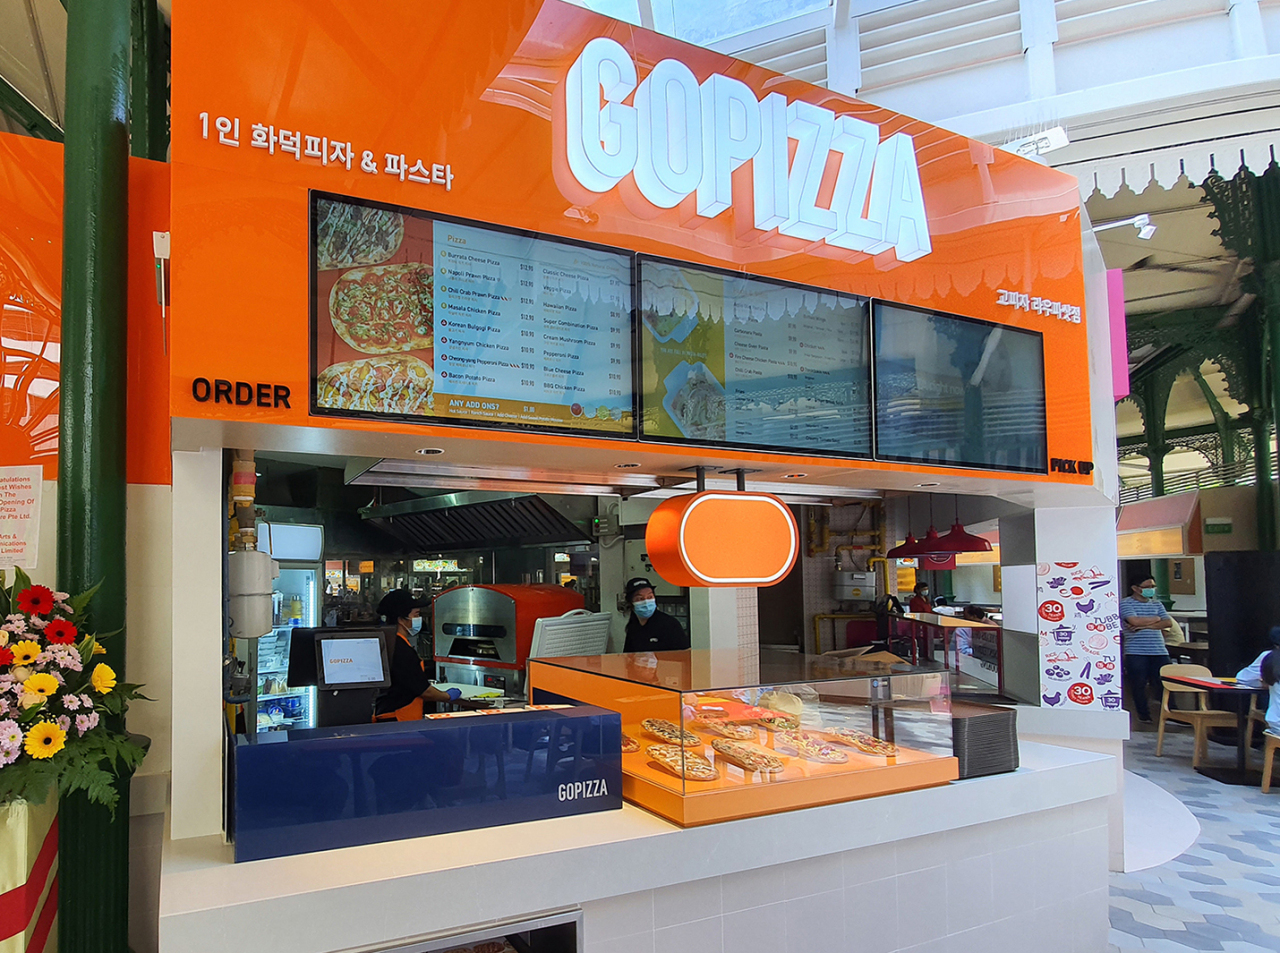 Gopizza outlet in Lau Pa Sat in Singapore. (Gopizza)